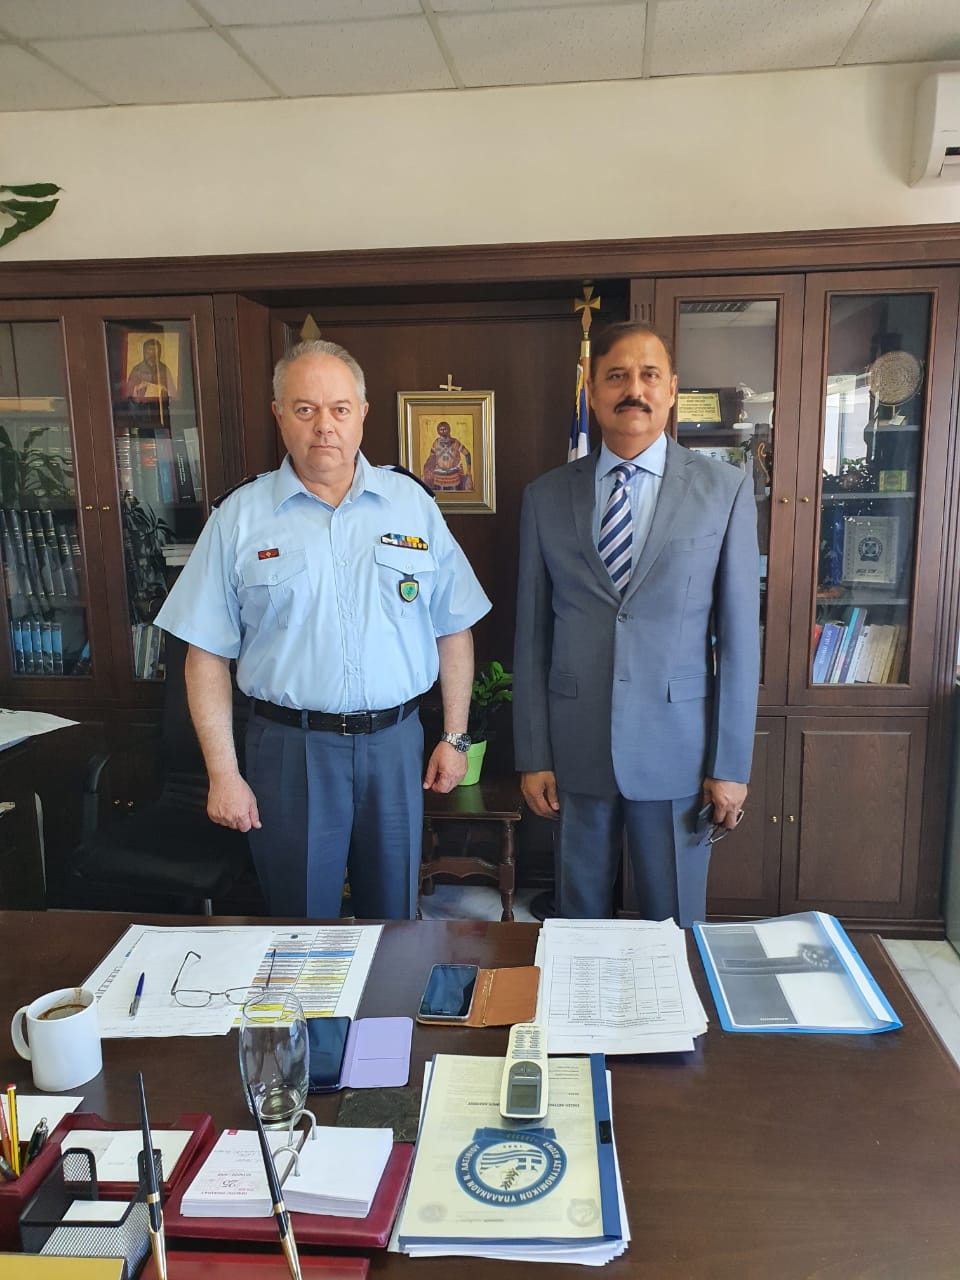 The Ambassador of Pakistan to Greece, met with General, Police Chief of Crete.